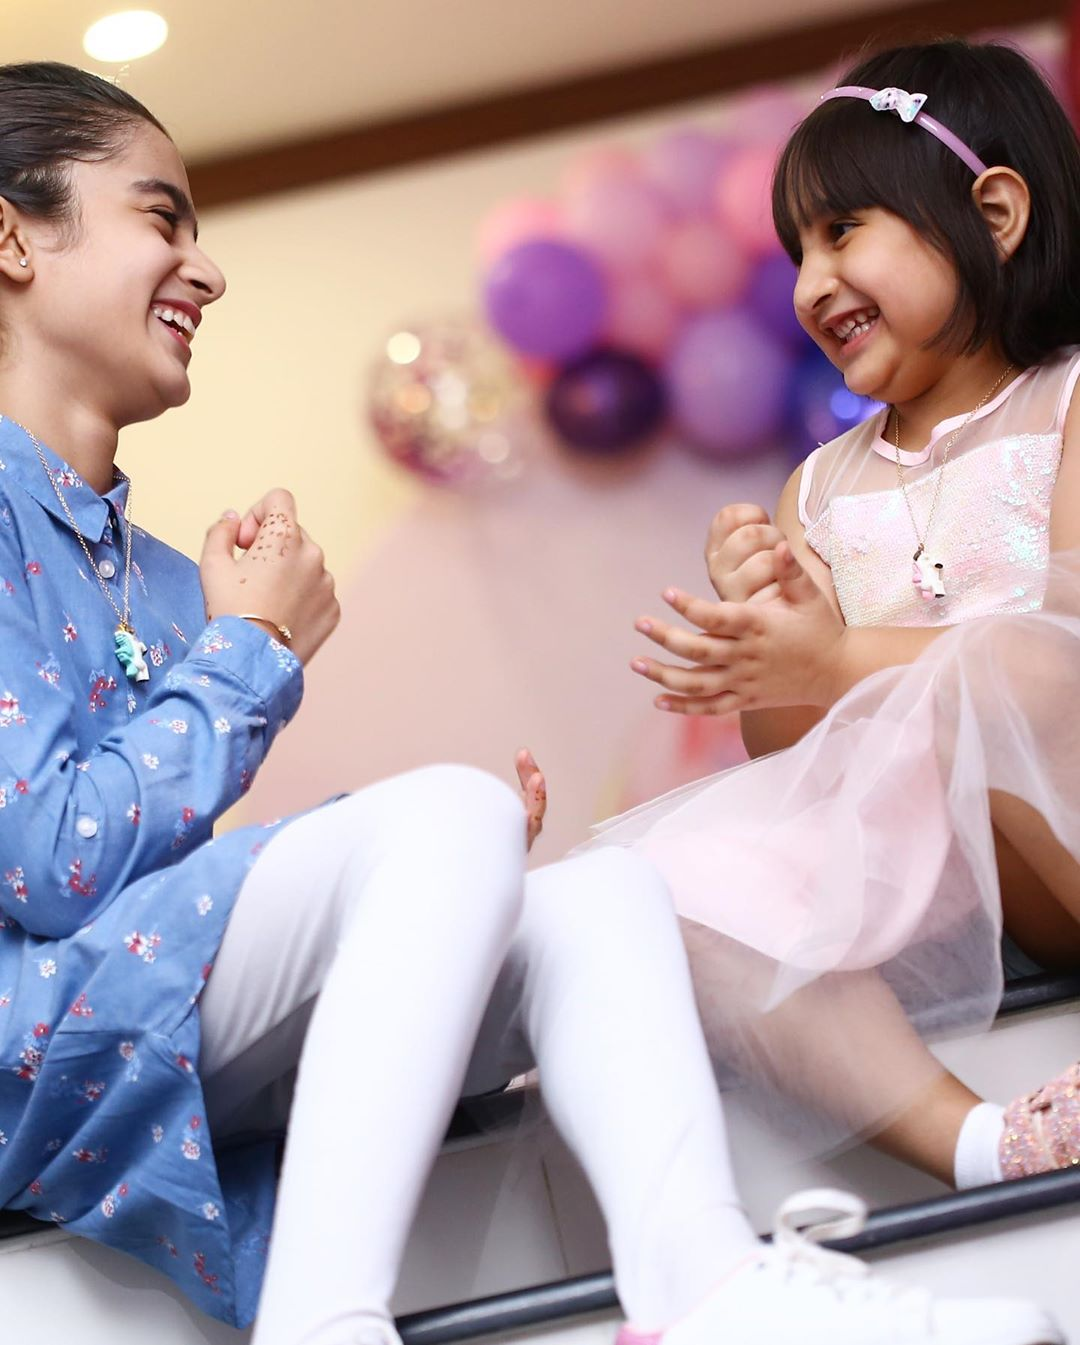 Naveed Raza celebrated his Daughter 5th birthday | Memorable Pictures